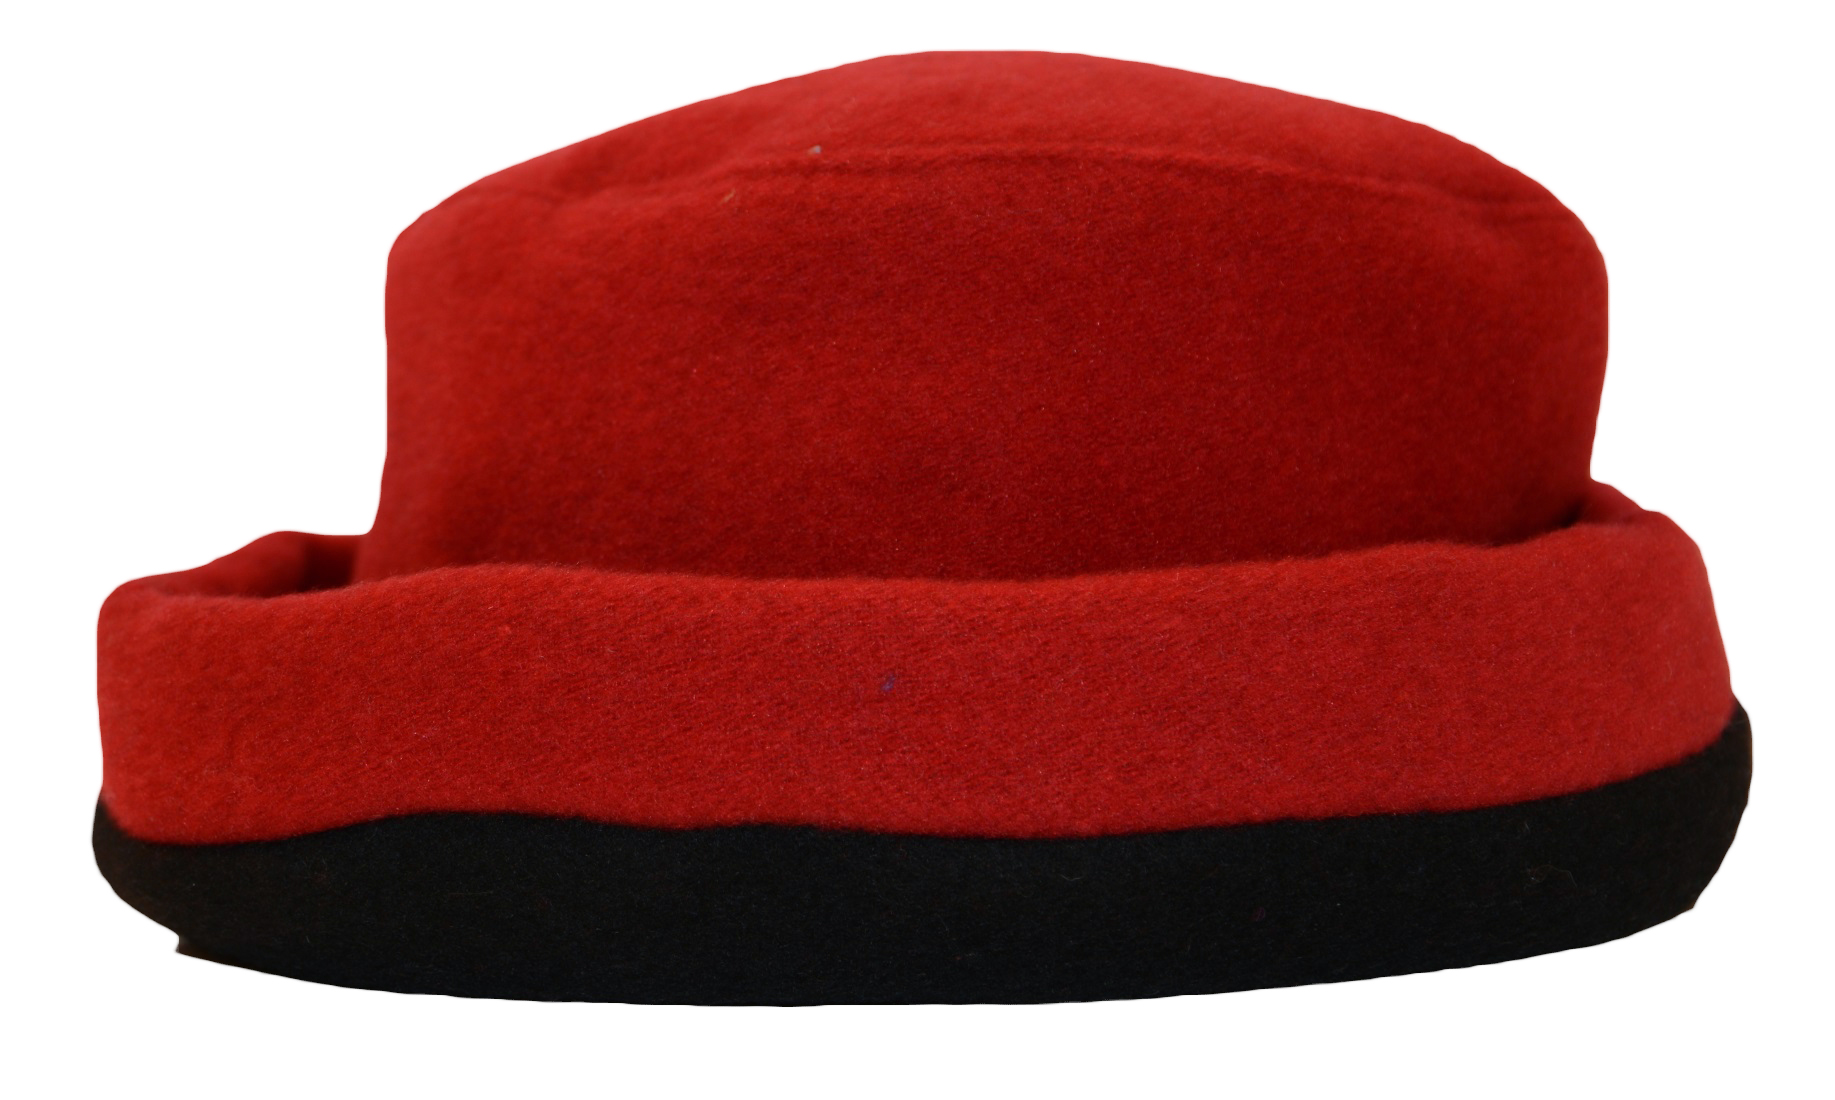 James Wool Cashmere Cloche Red Black